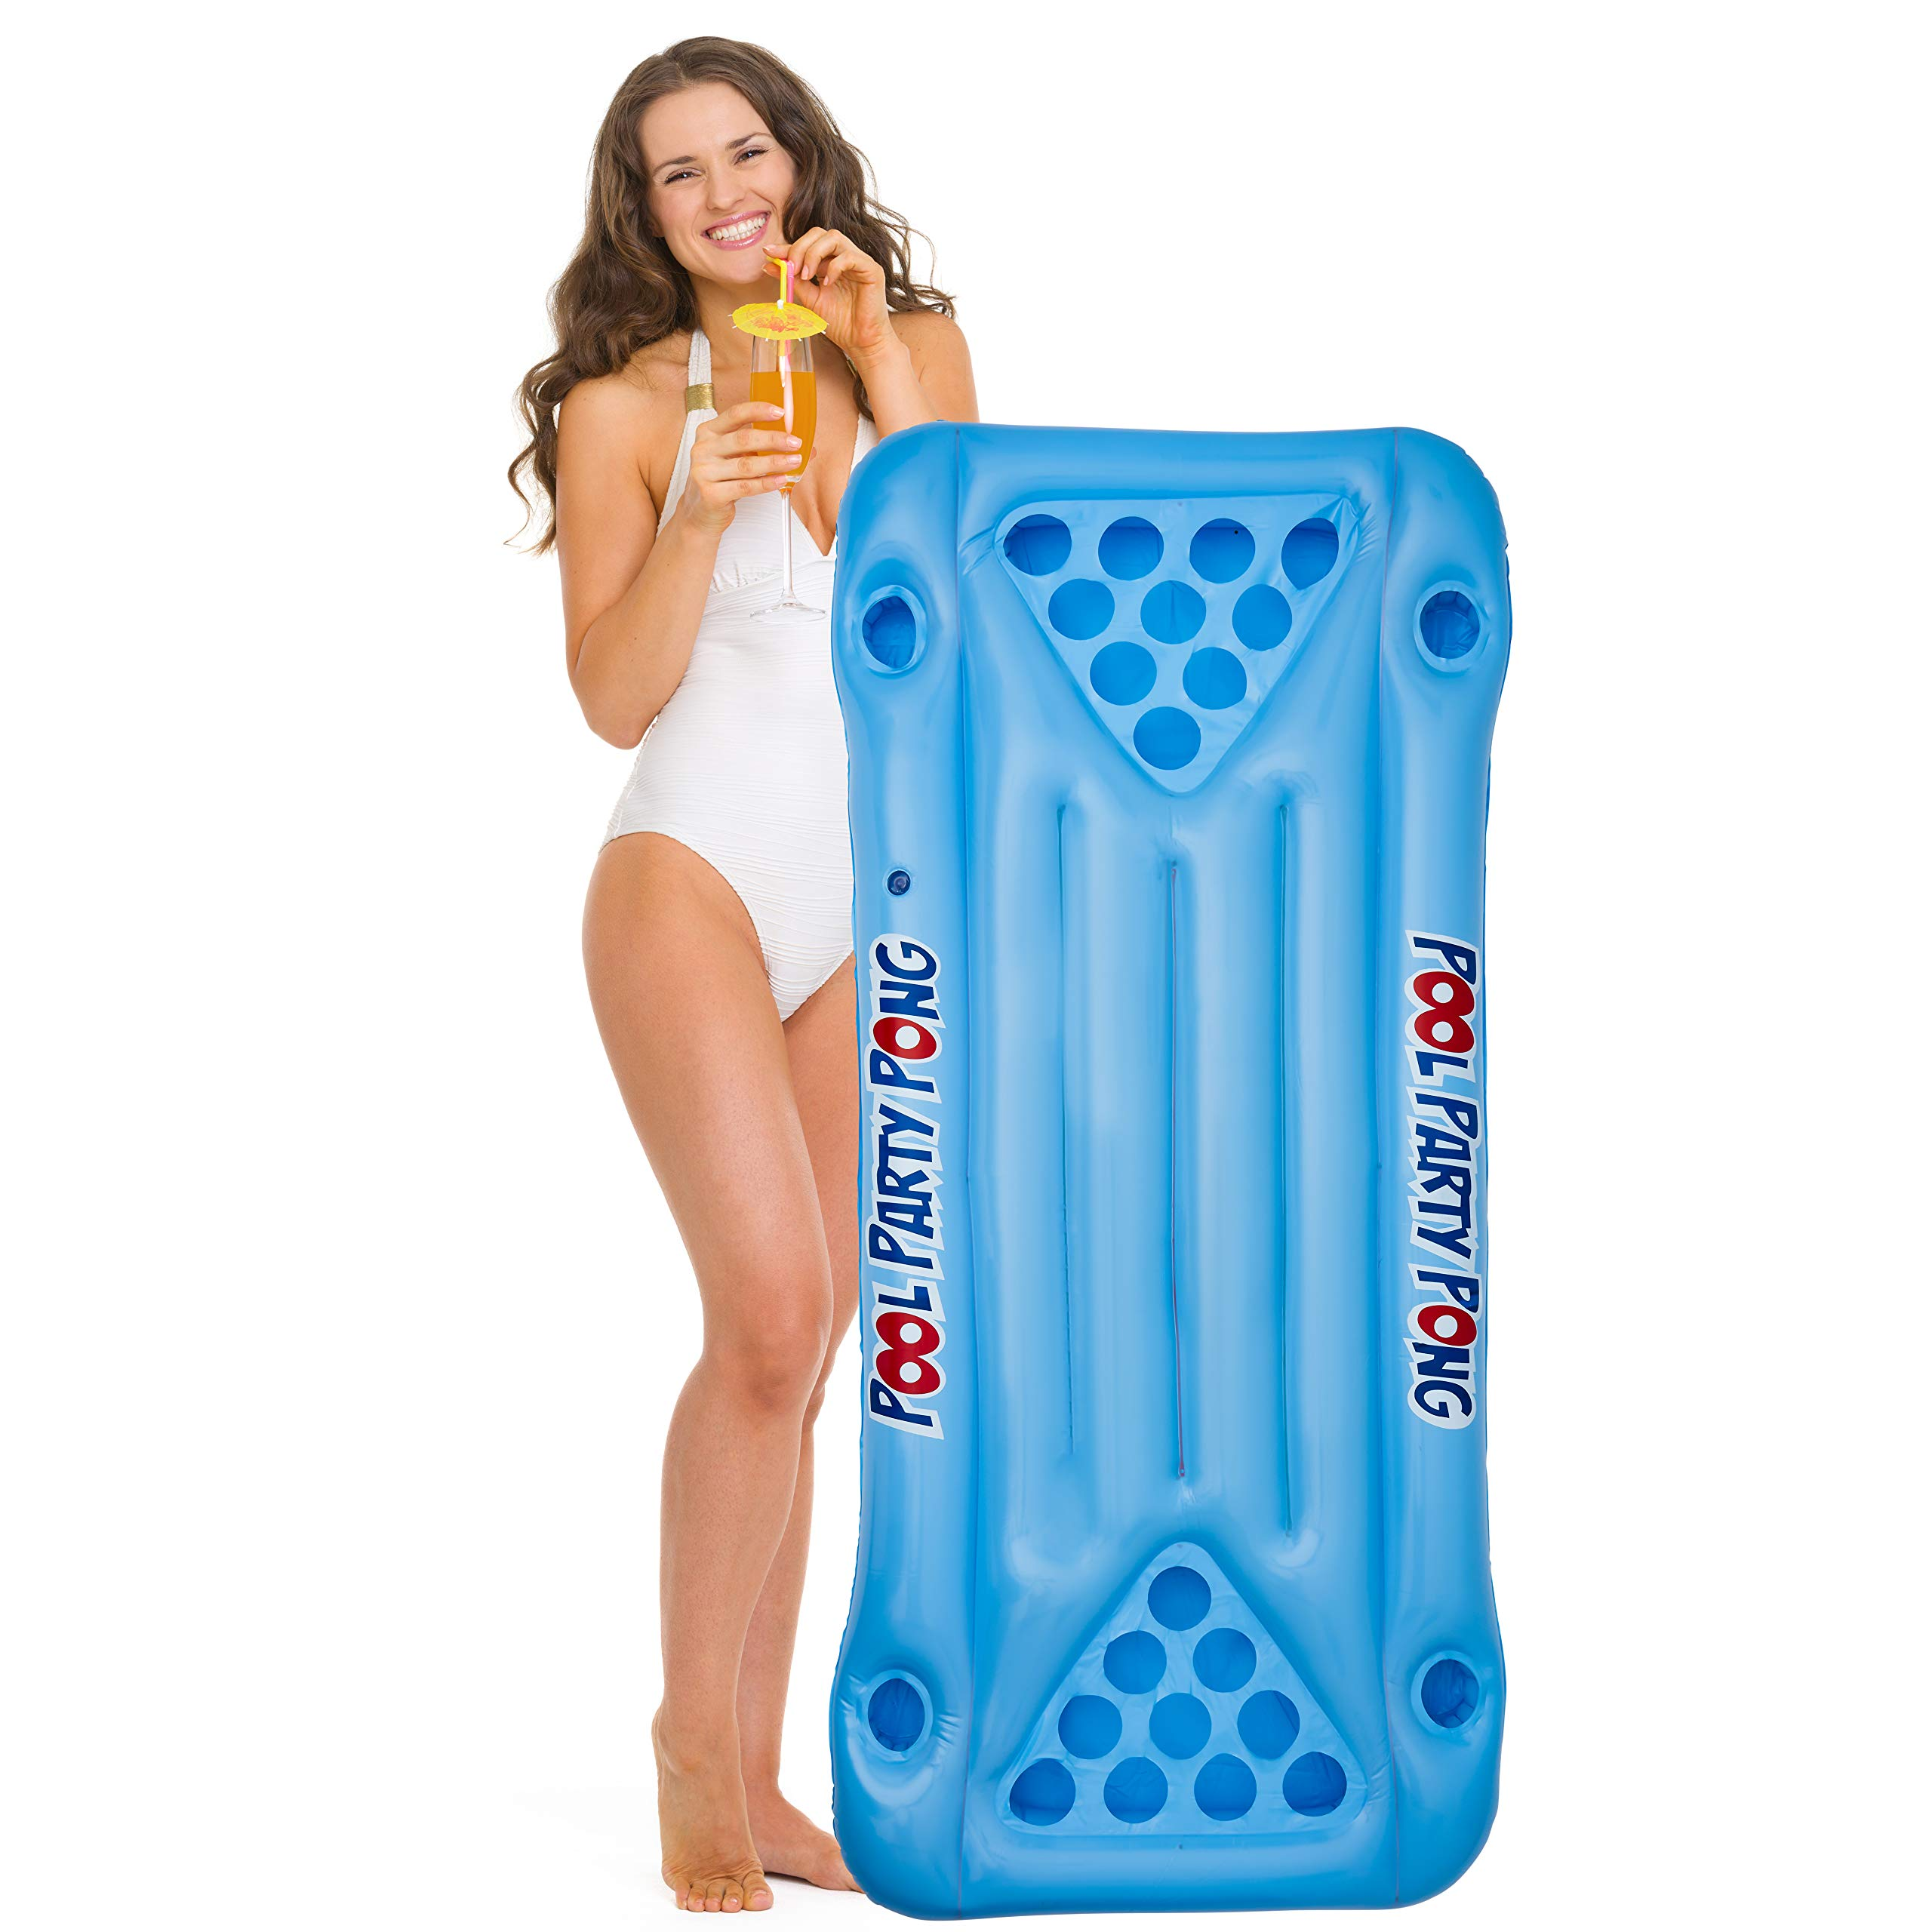 Koltose by Mash Beer Pong Pool Float, Floating Beer Pong Table, Lounger Styled Pool Raft Floatie for Pool Parties, Swimming Pool Accessories by Koltose by Mash (Image #1)